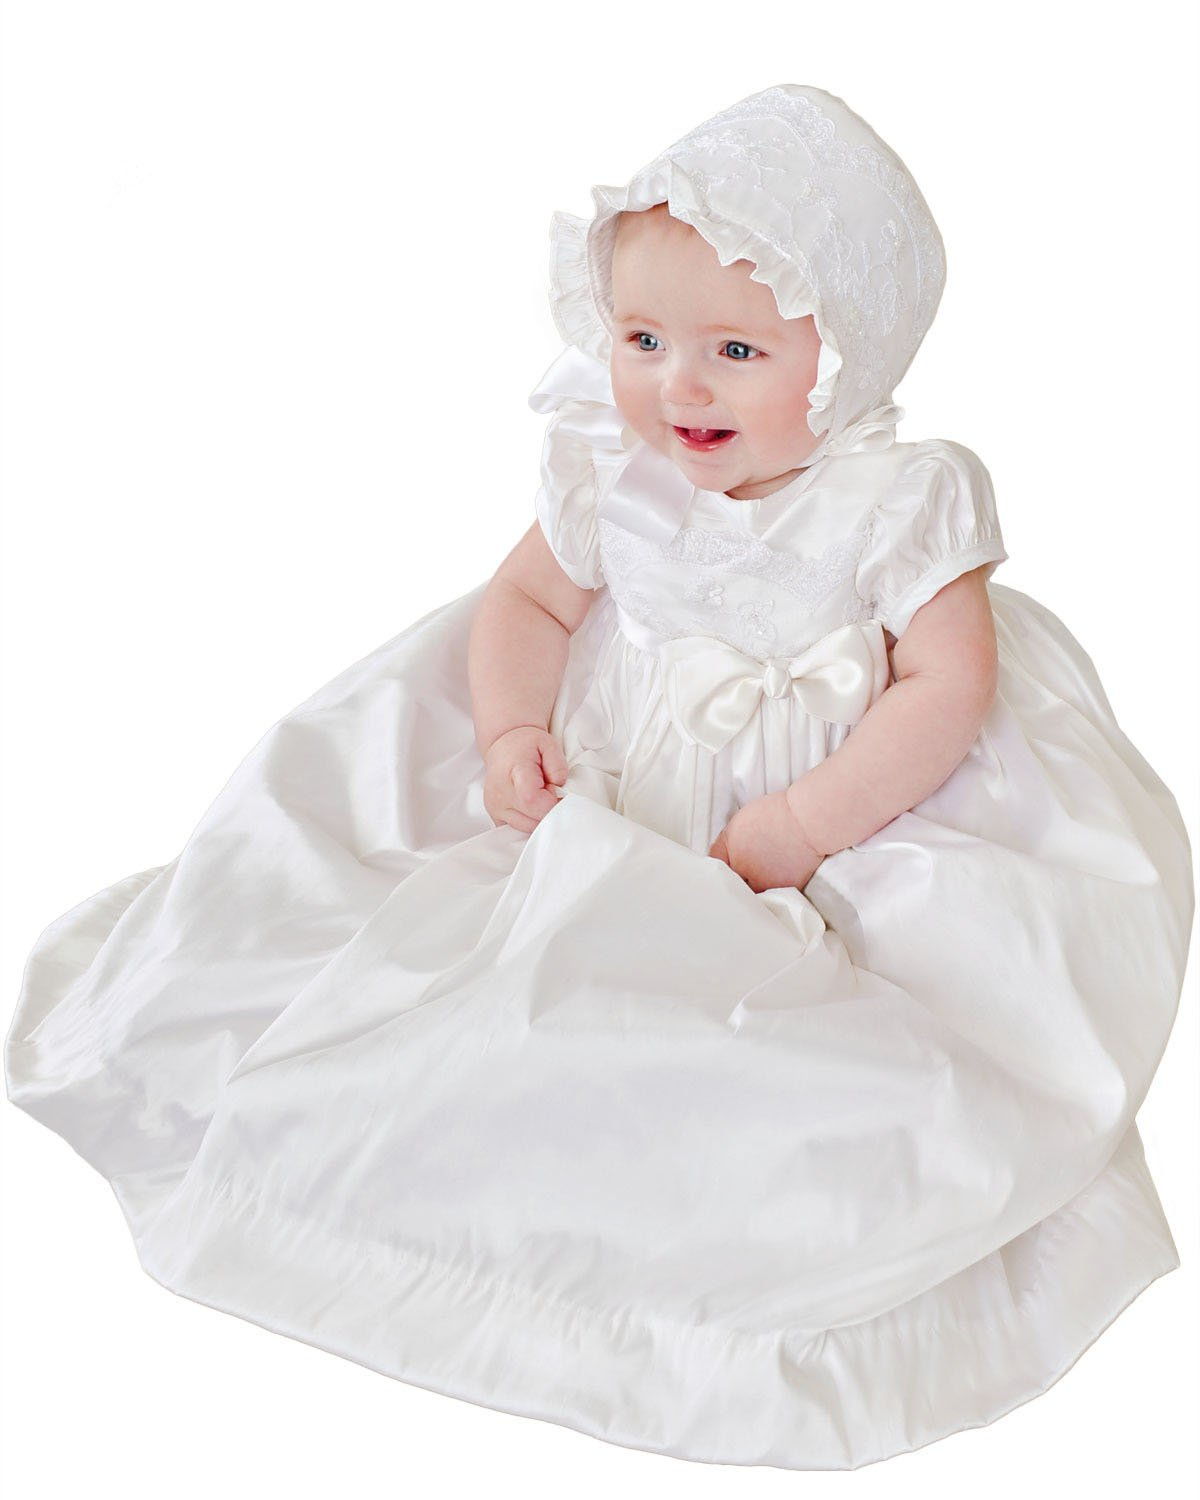 Isabella Silk and Lace Christening or Baptism Gown for Girls